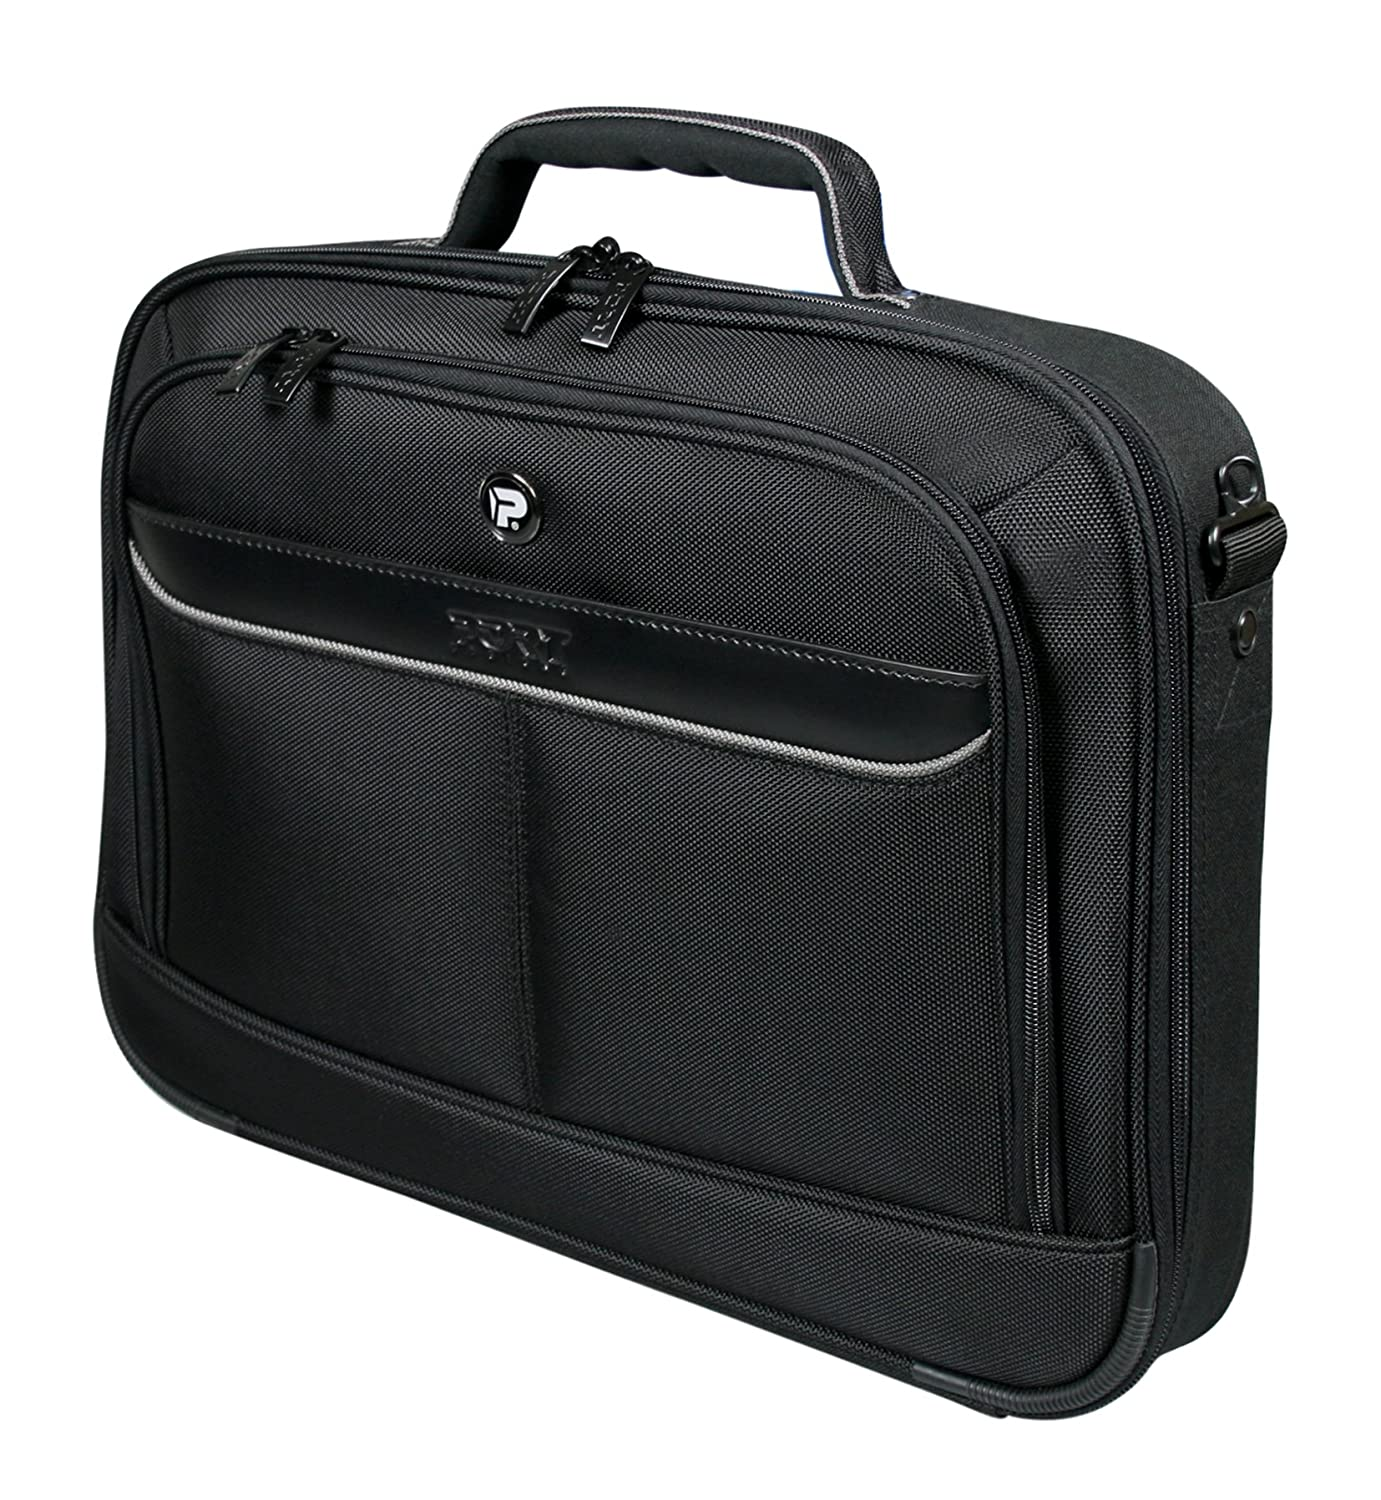 b6b7aad979 Port Designs Manhattan II Series Clamshell Laptop Bag for Laptop Up to 17.3  inch  Amazon.co.uk  Computers   Accessories